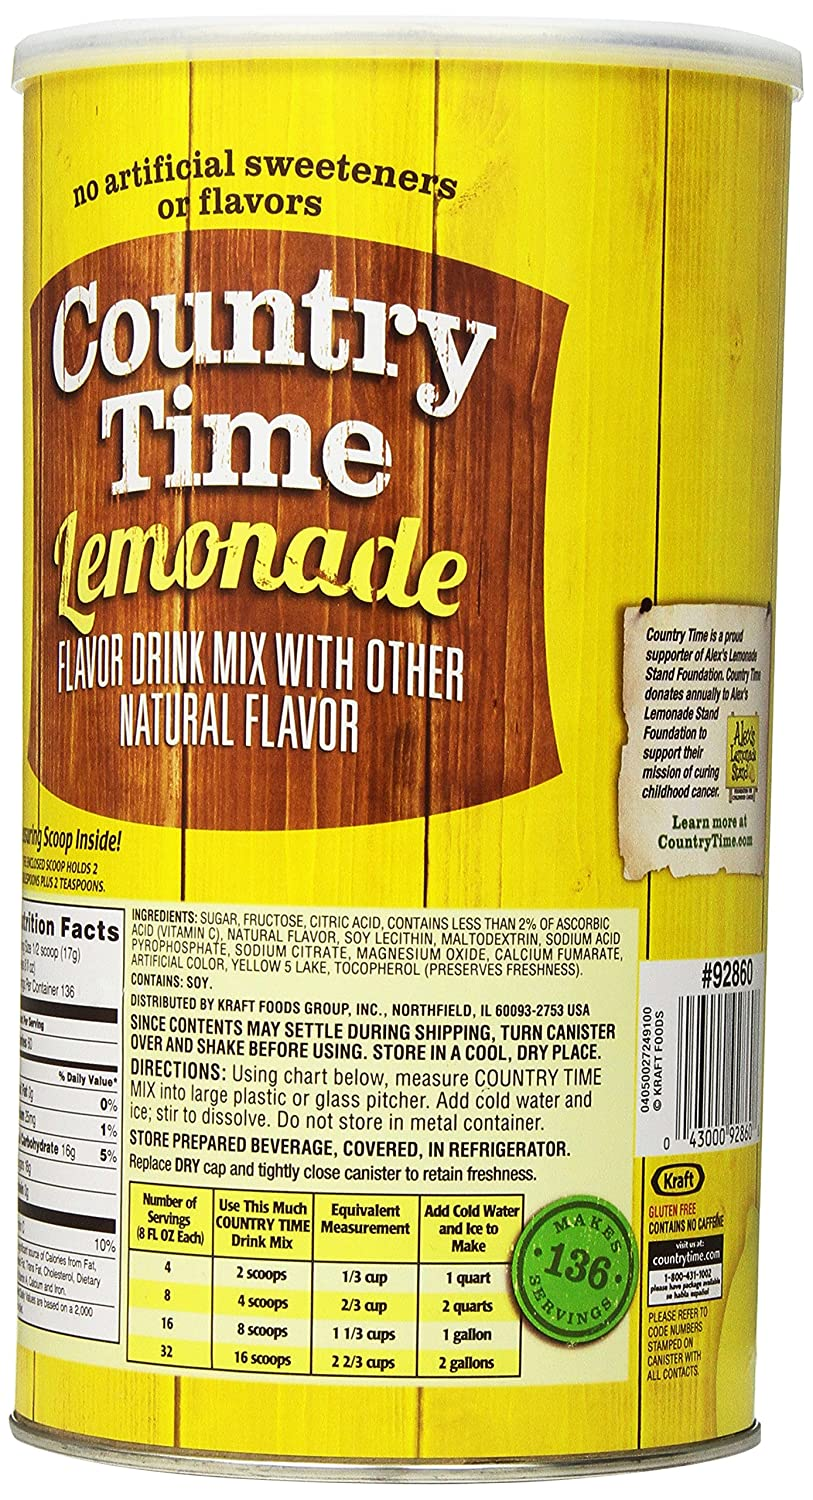 The Arnold Palmer beverage is a non-alcoholic combination of iced tea and lemonade, created and made popular by American golfer Arnold Palmer.. An alcoholic version of the beverage (generally made with vodka) is often referred to as a John Daly. However, MillerCoors began marketing and distributing a commercially available malt-based version of the beverage under the Arnold Palmer Spiked name.